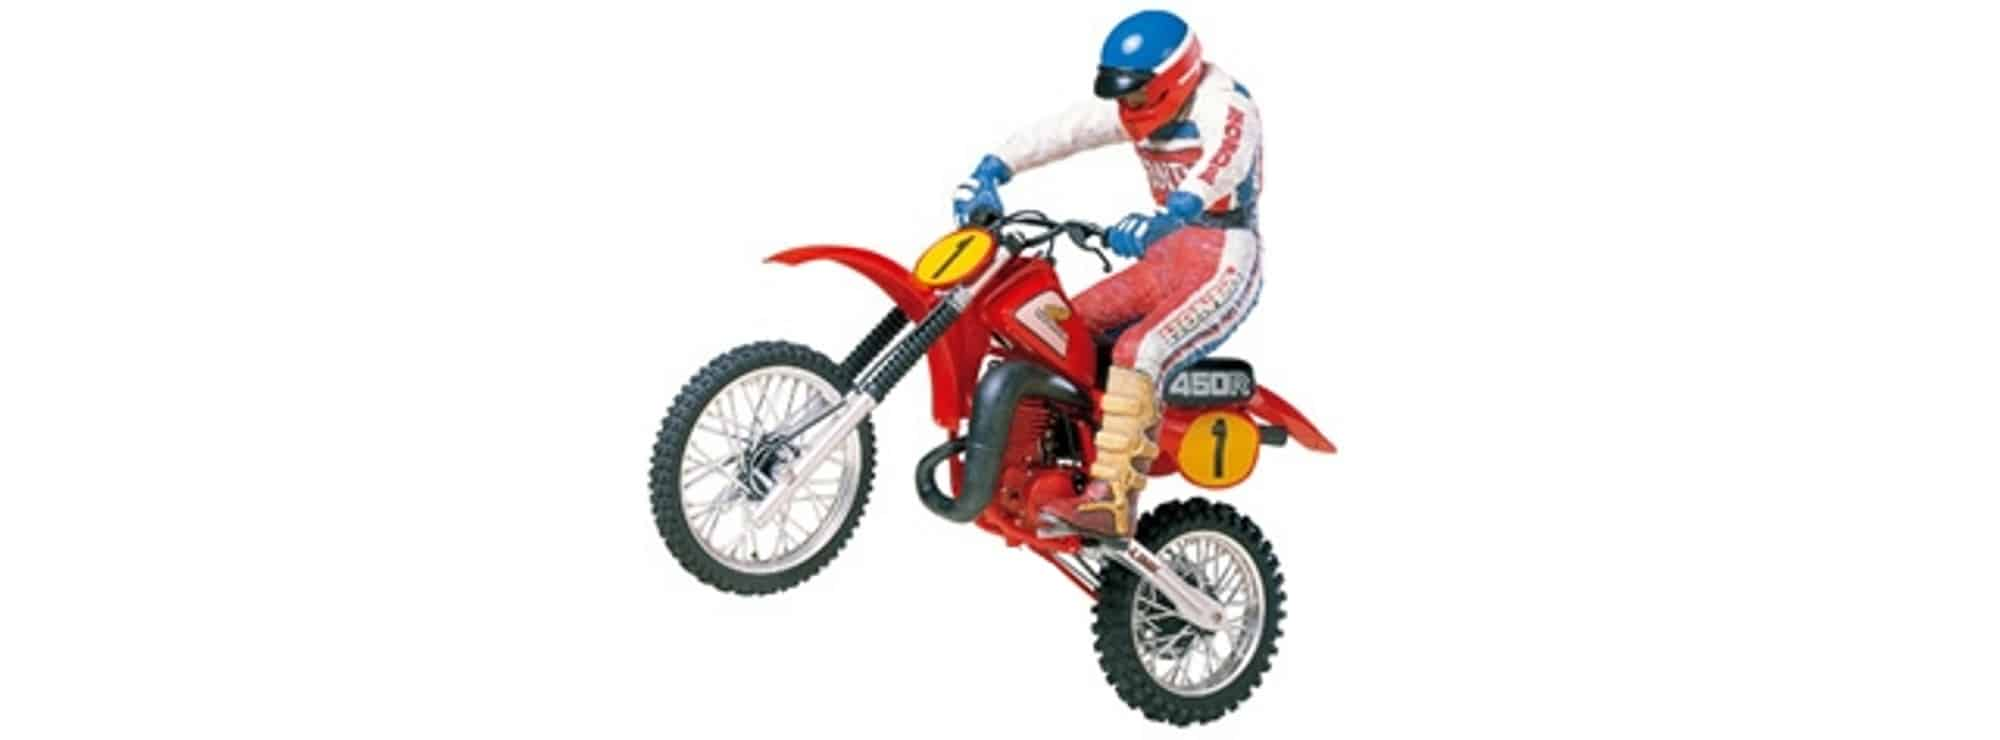 ausverkauft tamiya 14018 honda cr450r motocross w rider. Black Bedroom Furniture Sets. Home Design Ideas